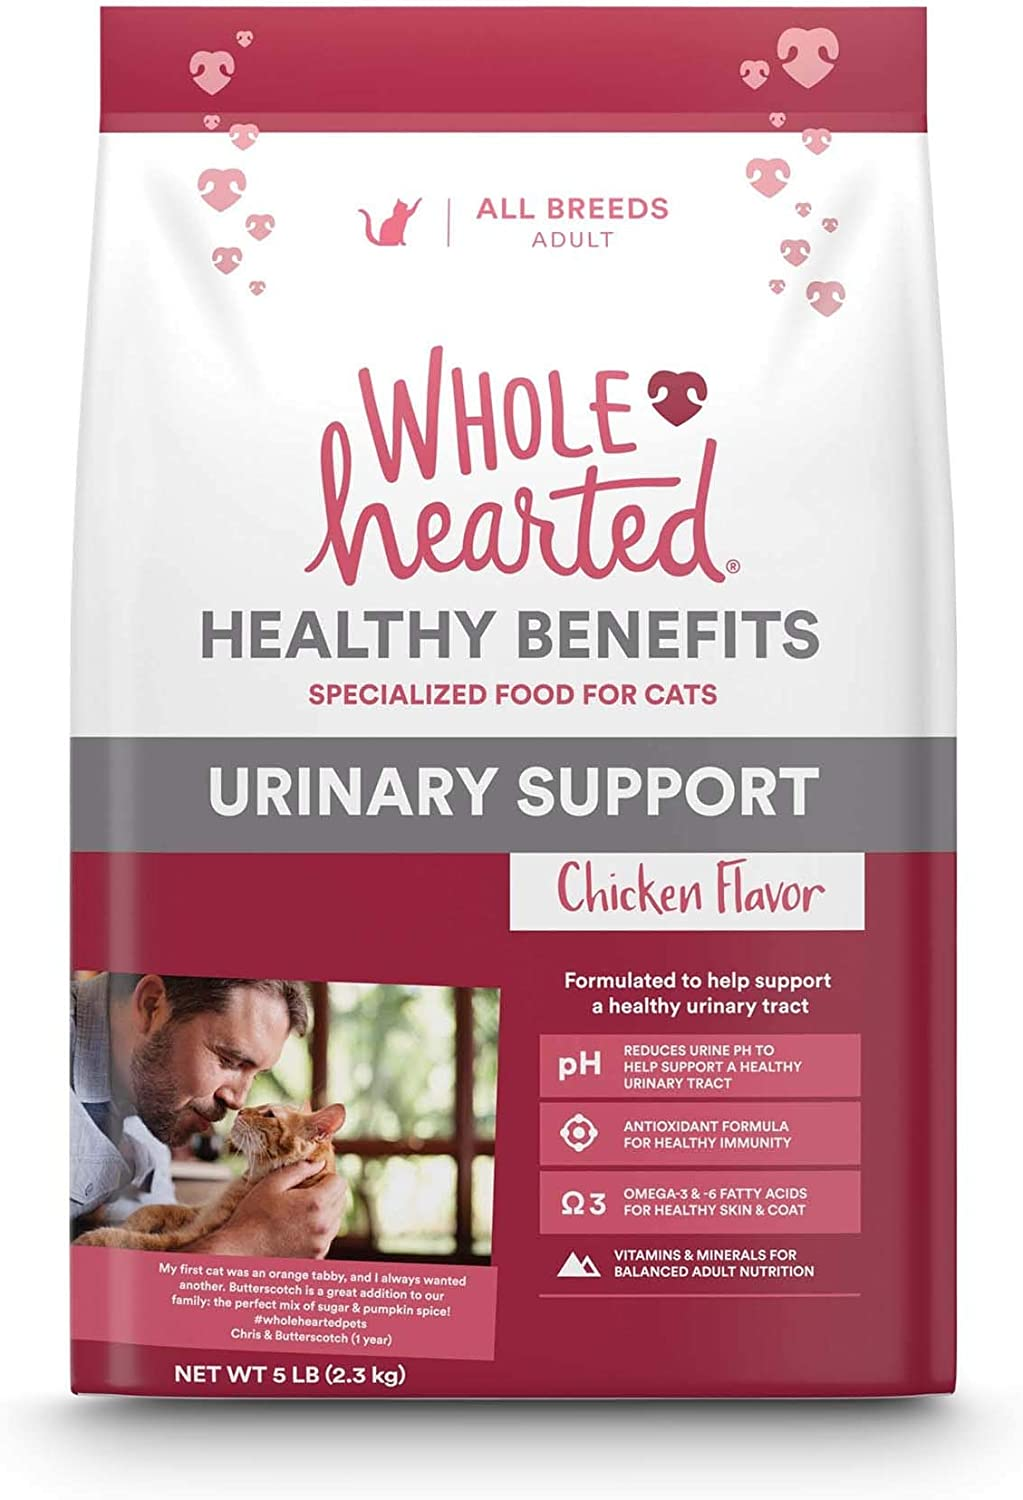 WholeHearted Urinary Support Chicken Flavor Dry Cat Food, 5 lbs. by PETCO